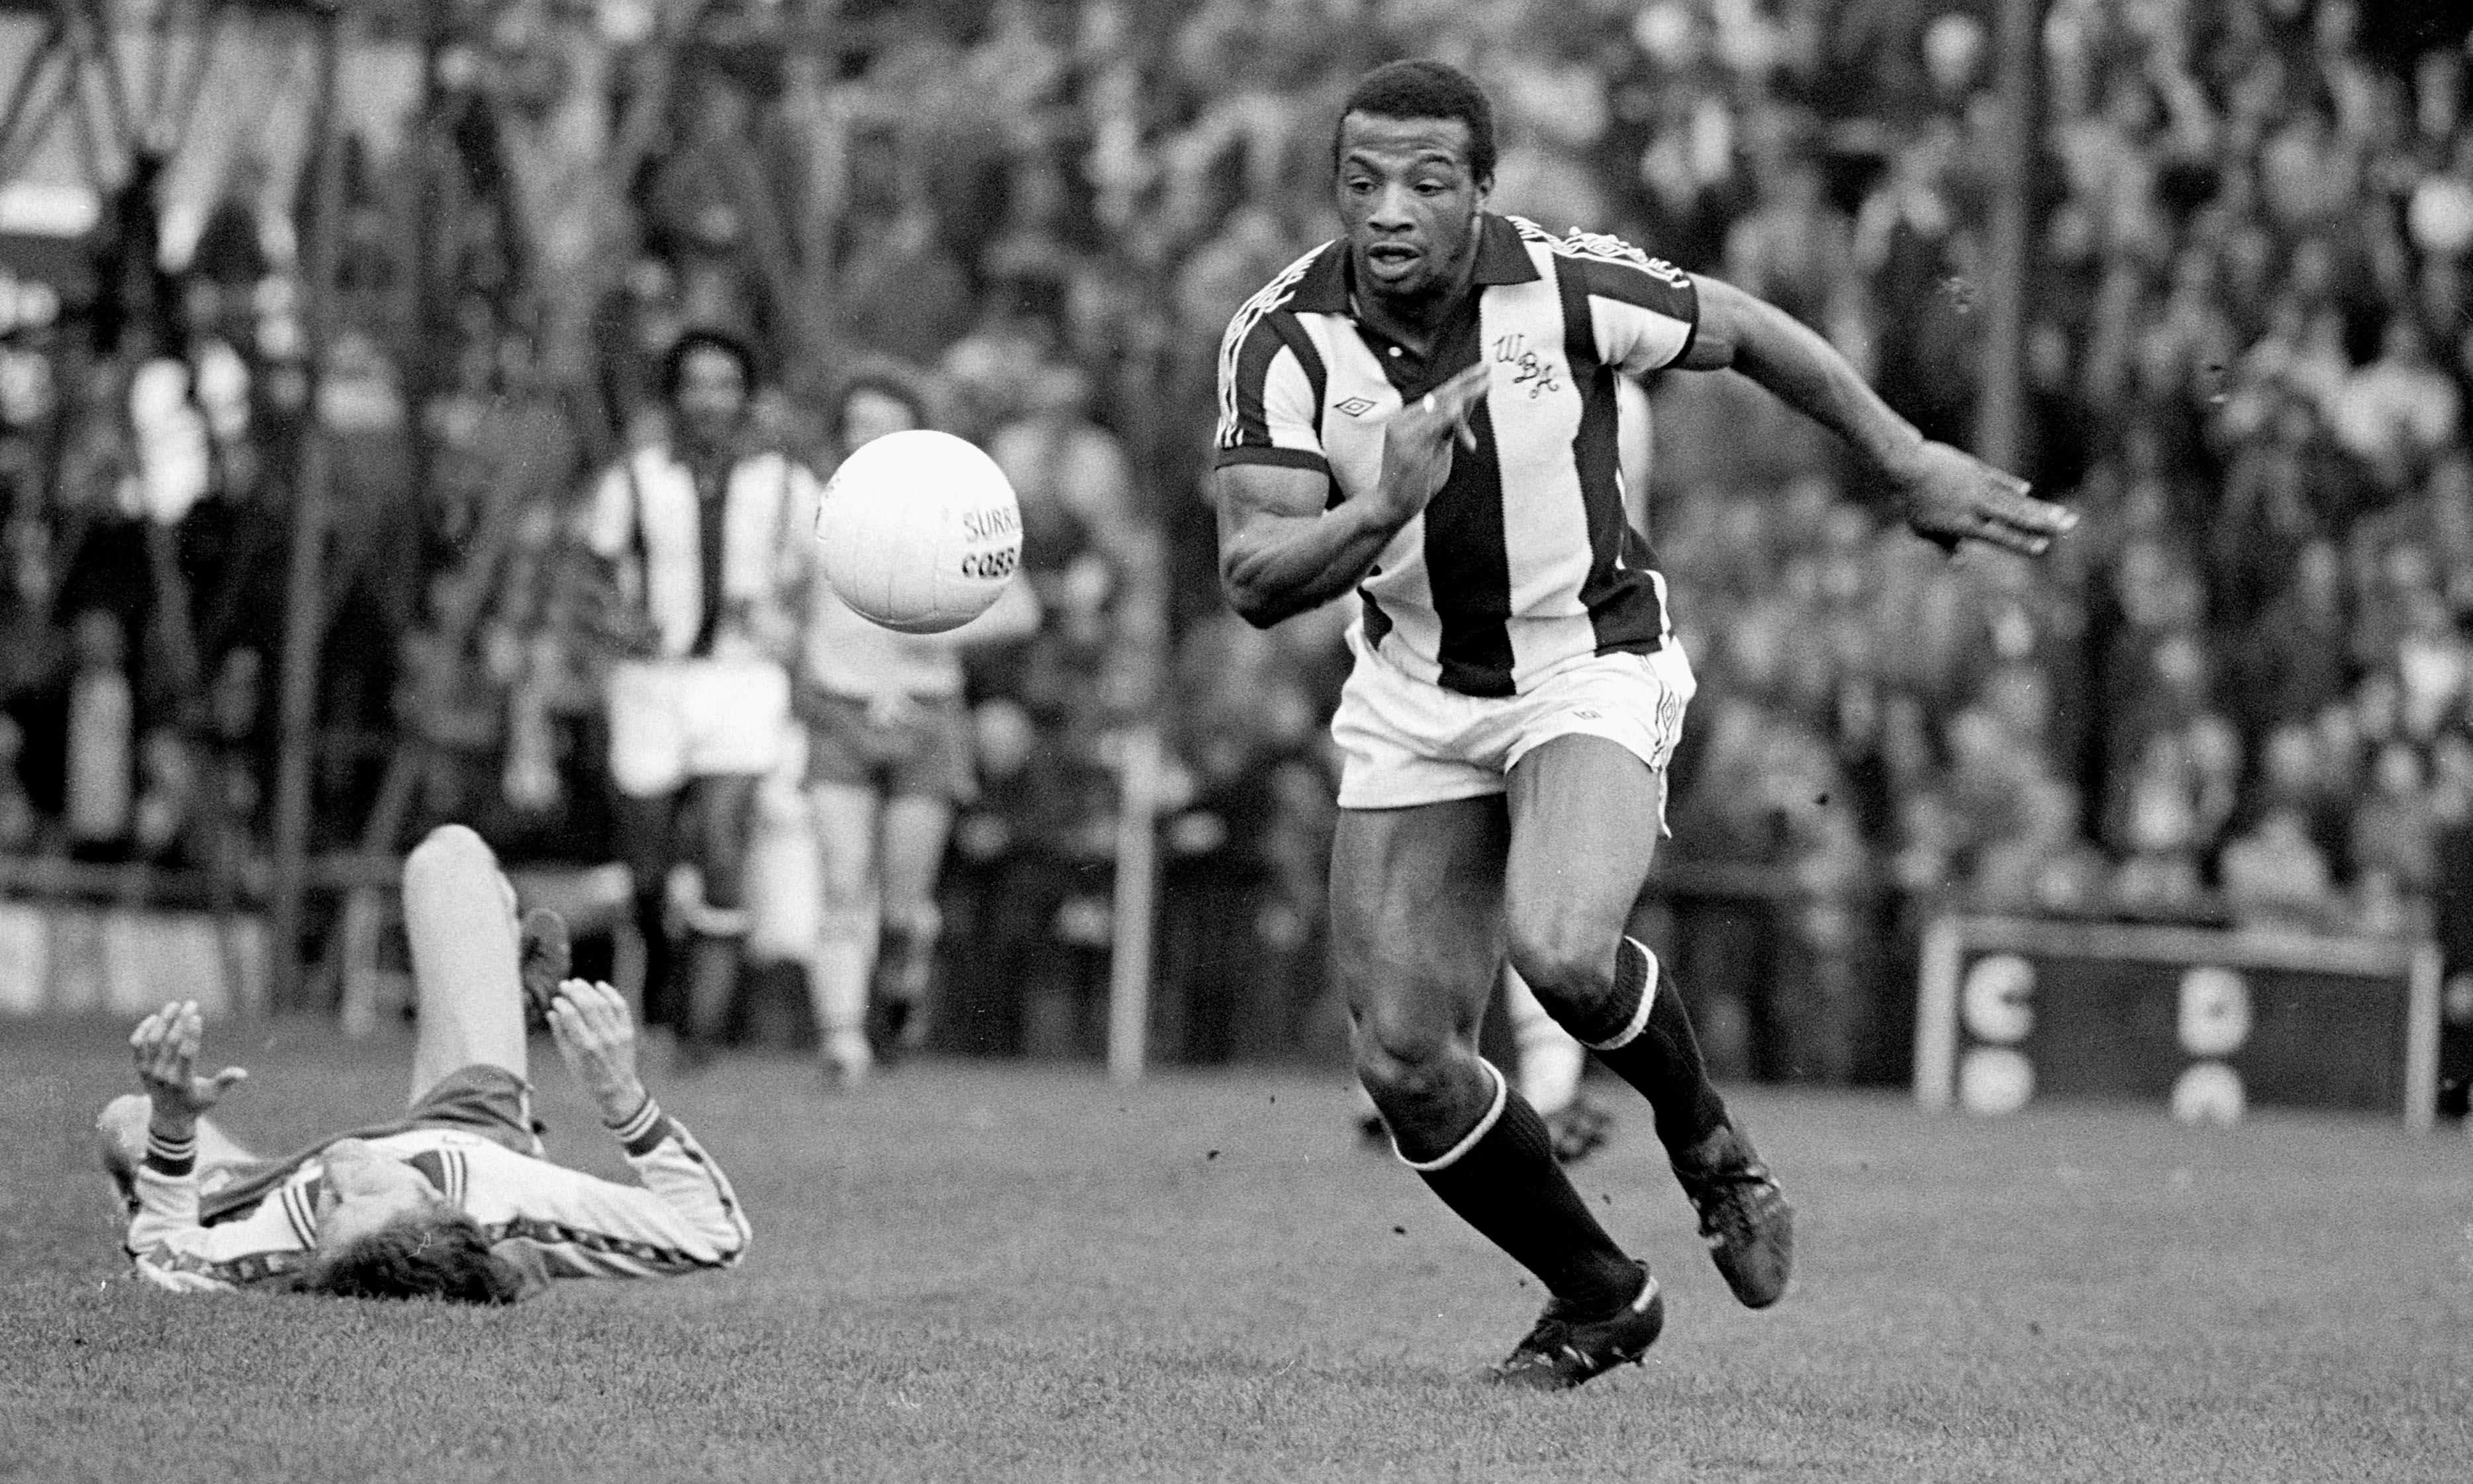 No Win Race by Derek A Bardowell review – a painful reflection of racism in British sport